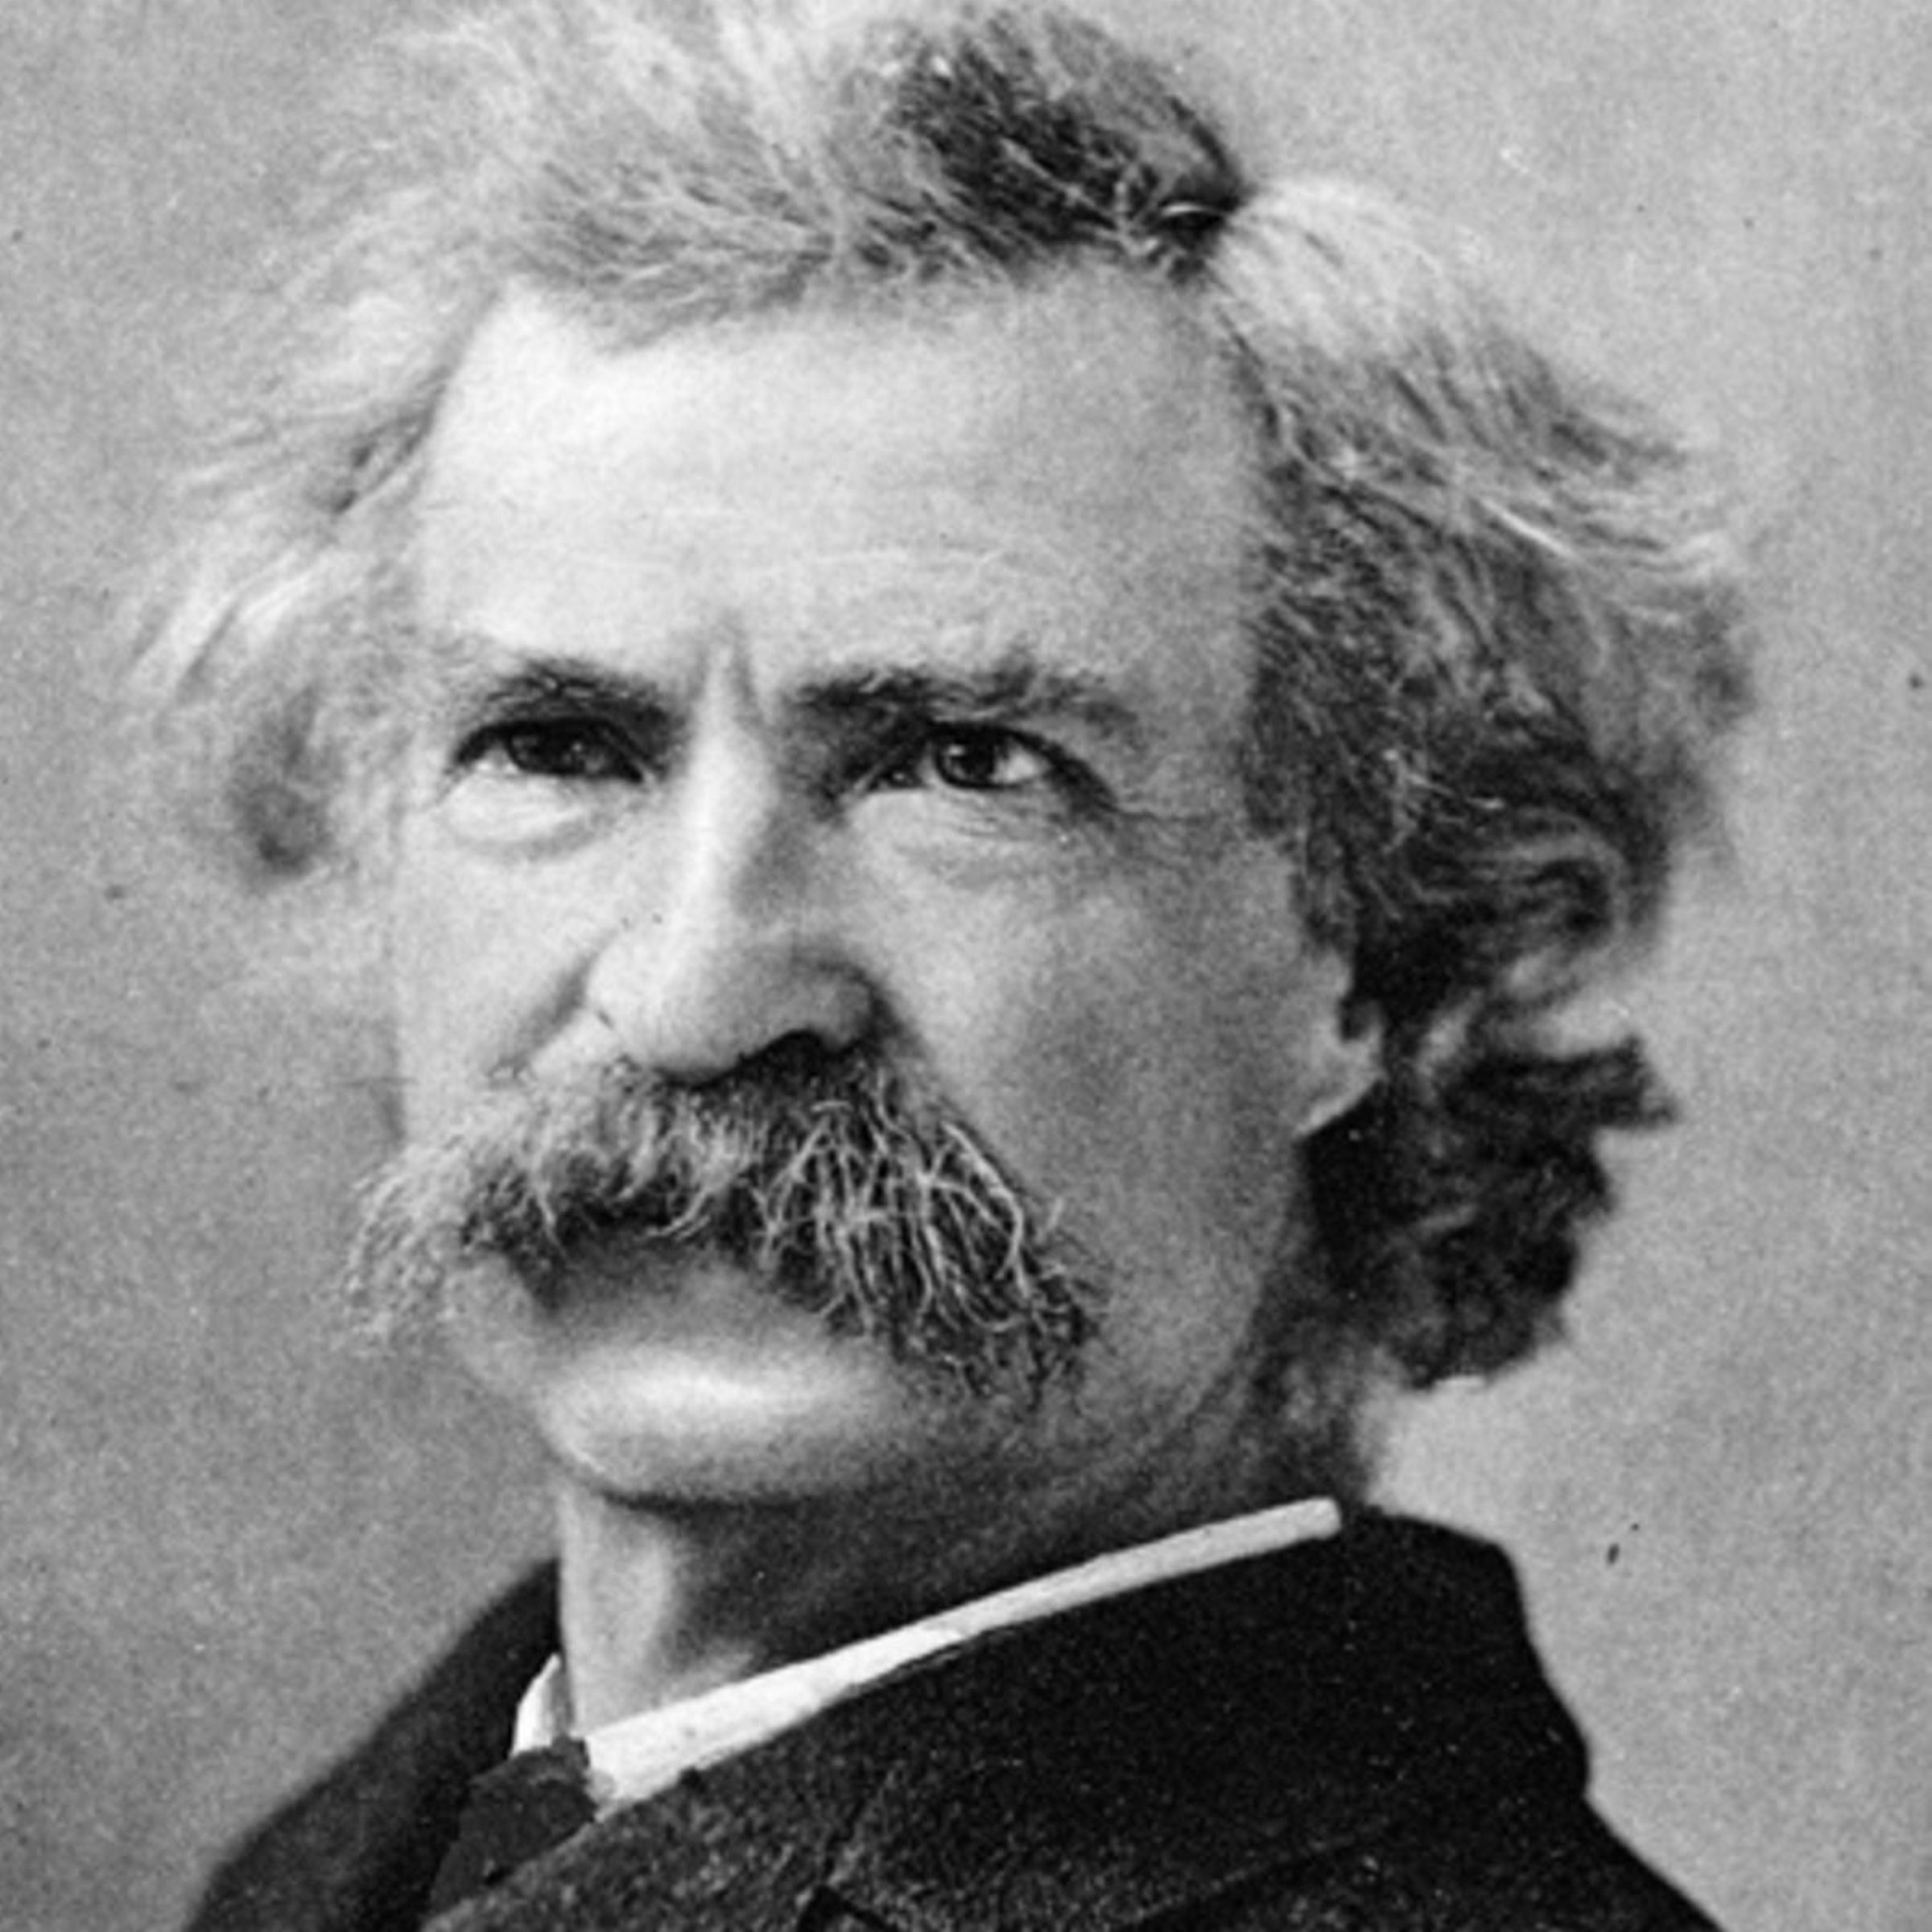 """""""The Statesman and the Storyteller,"""" about Mark Twain's friendship with John Hay, may have credibility issues."""